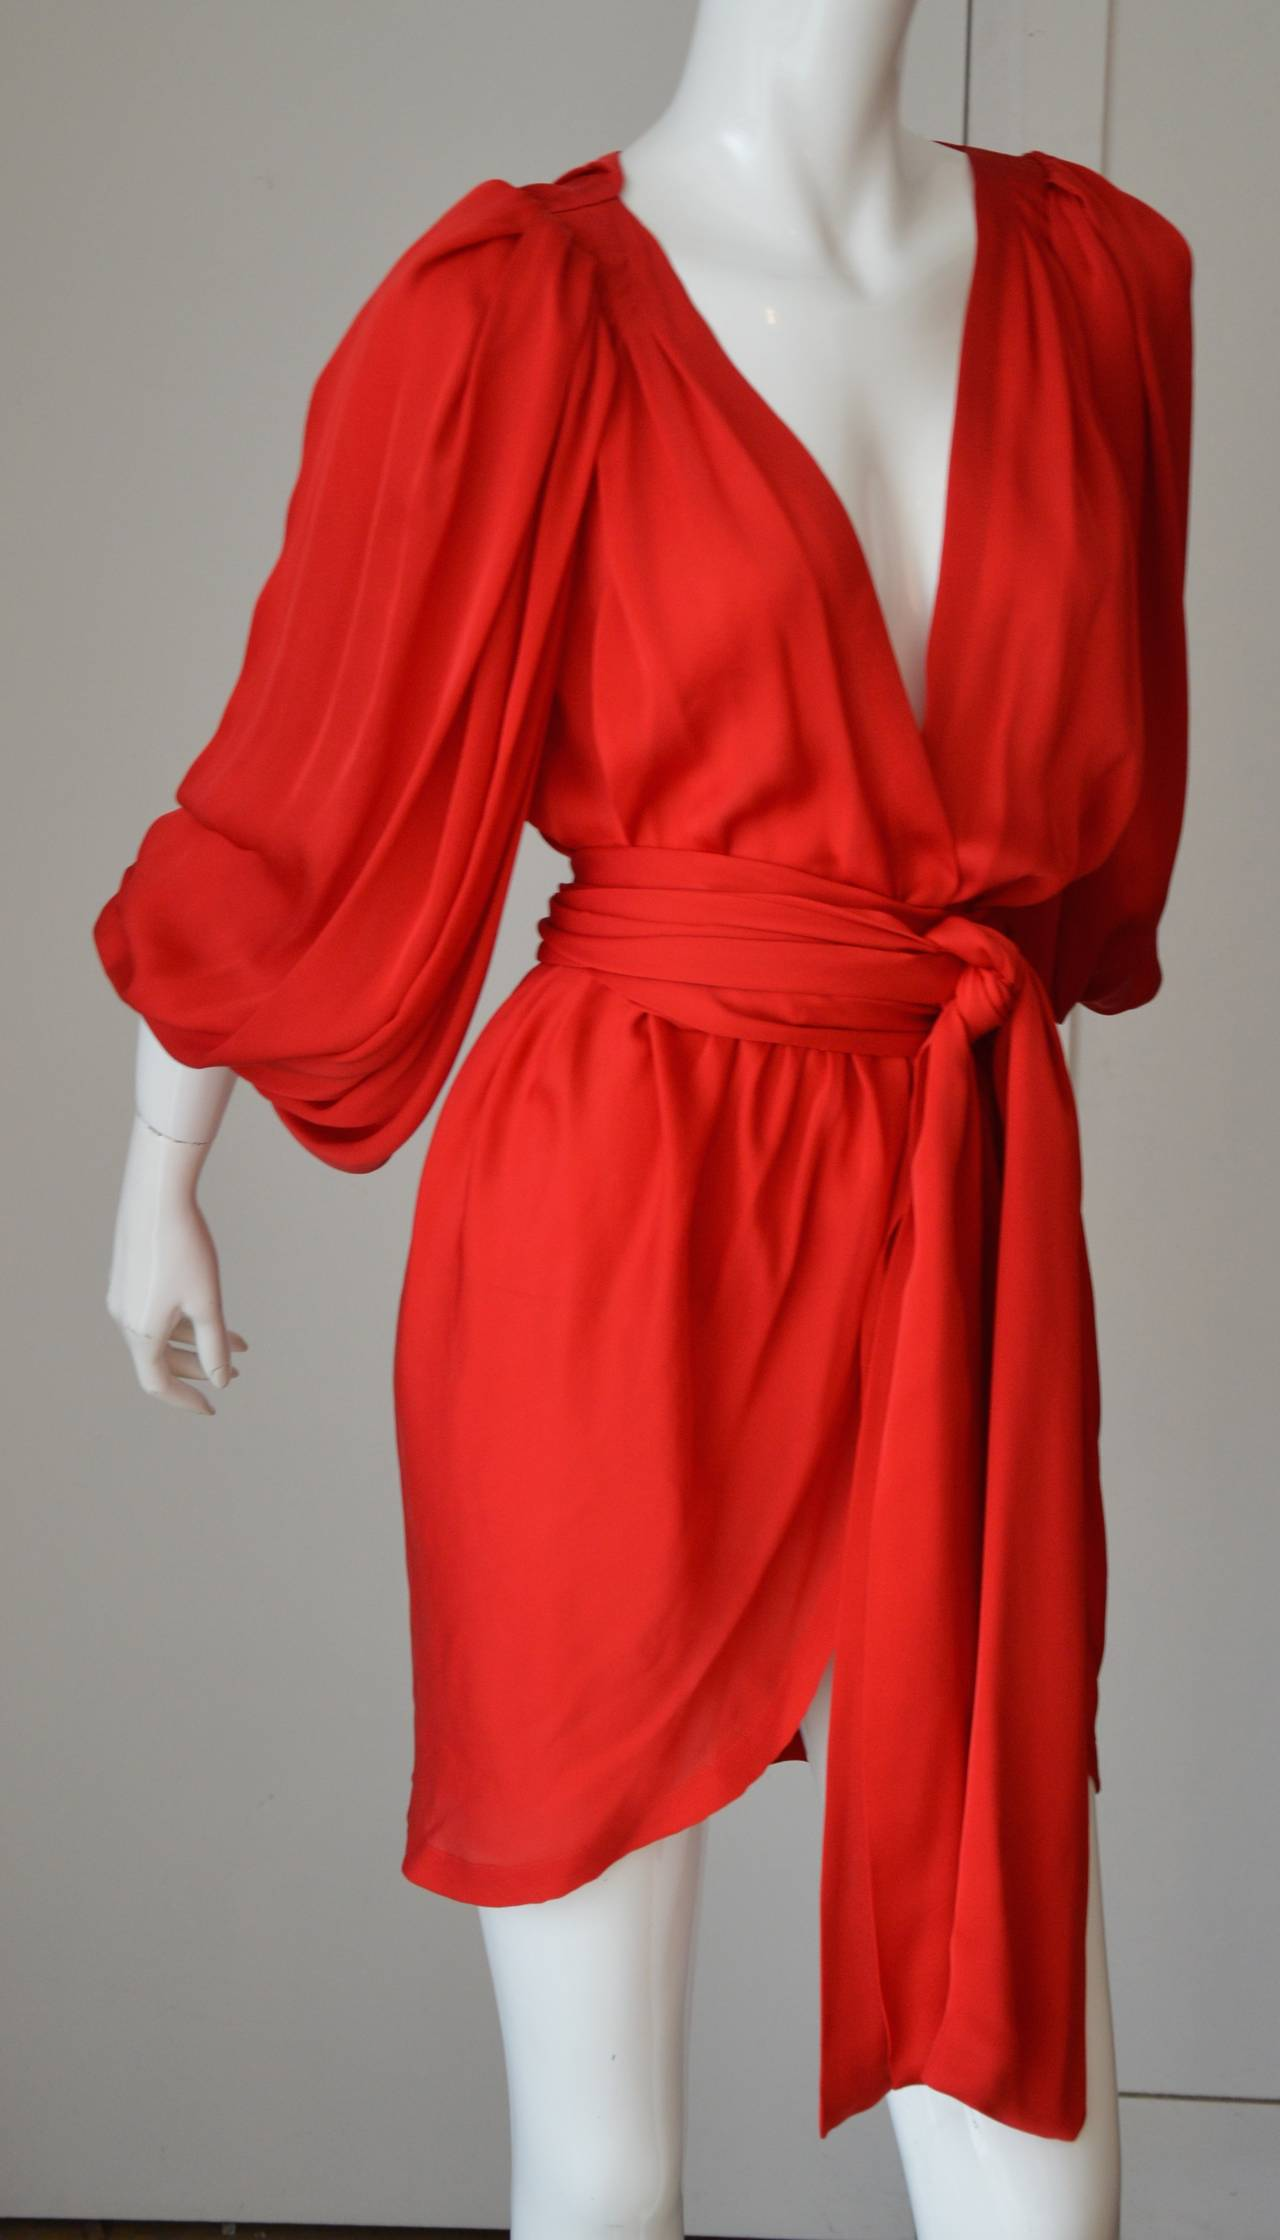 Iconic Yves Saint Laurent Silk Wrap Cocktail Dress 2